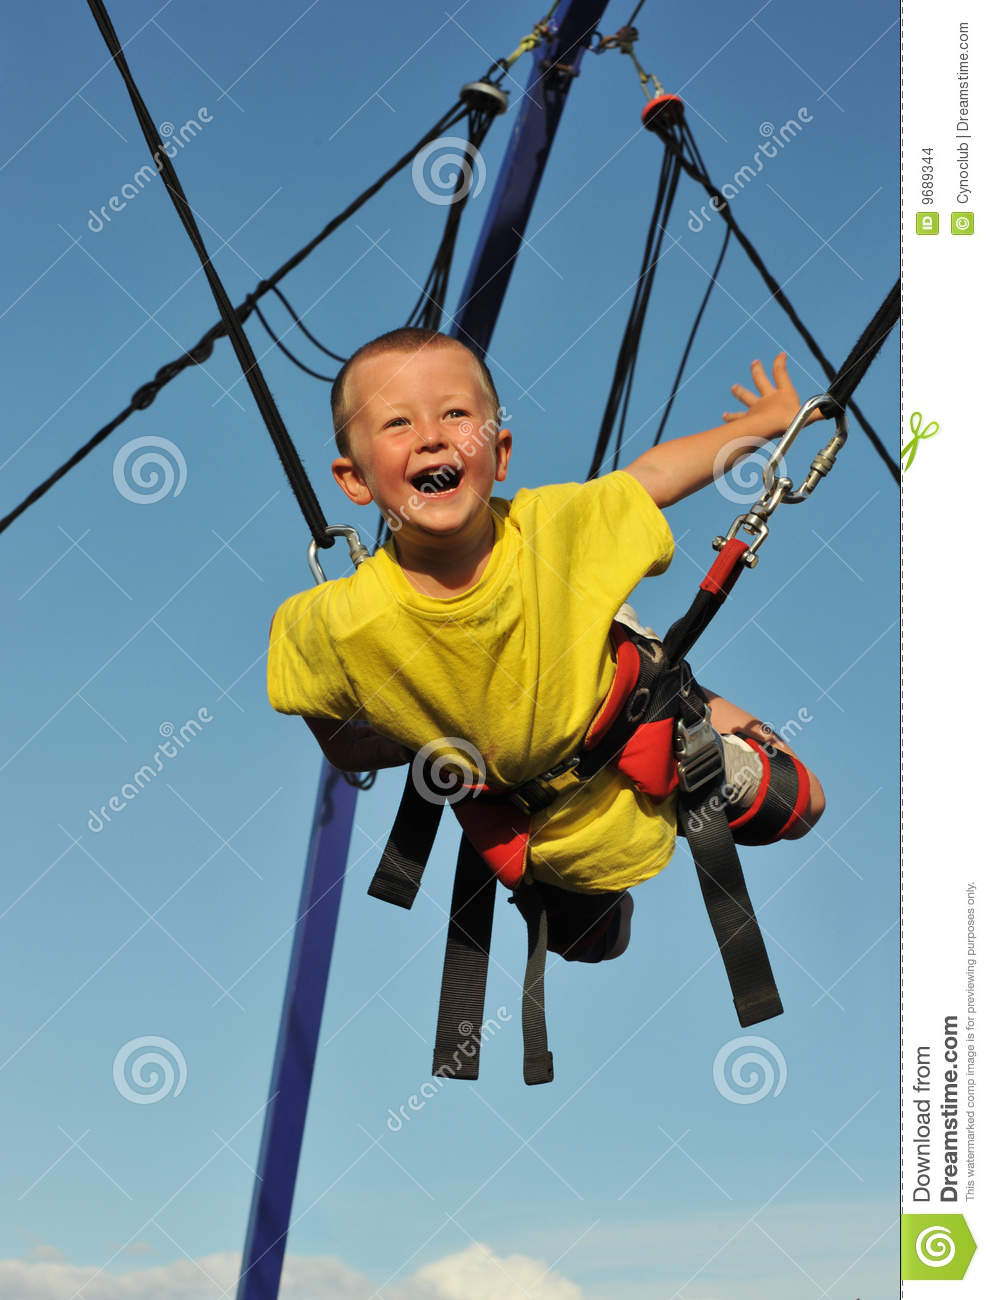 46f3b8a40264 Bungee jumping stock photo. Image of activity